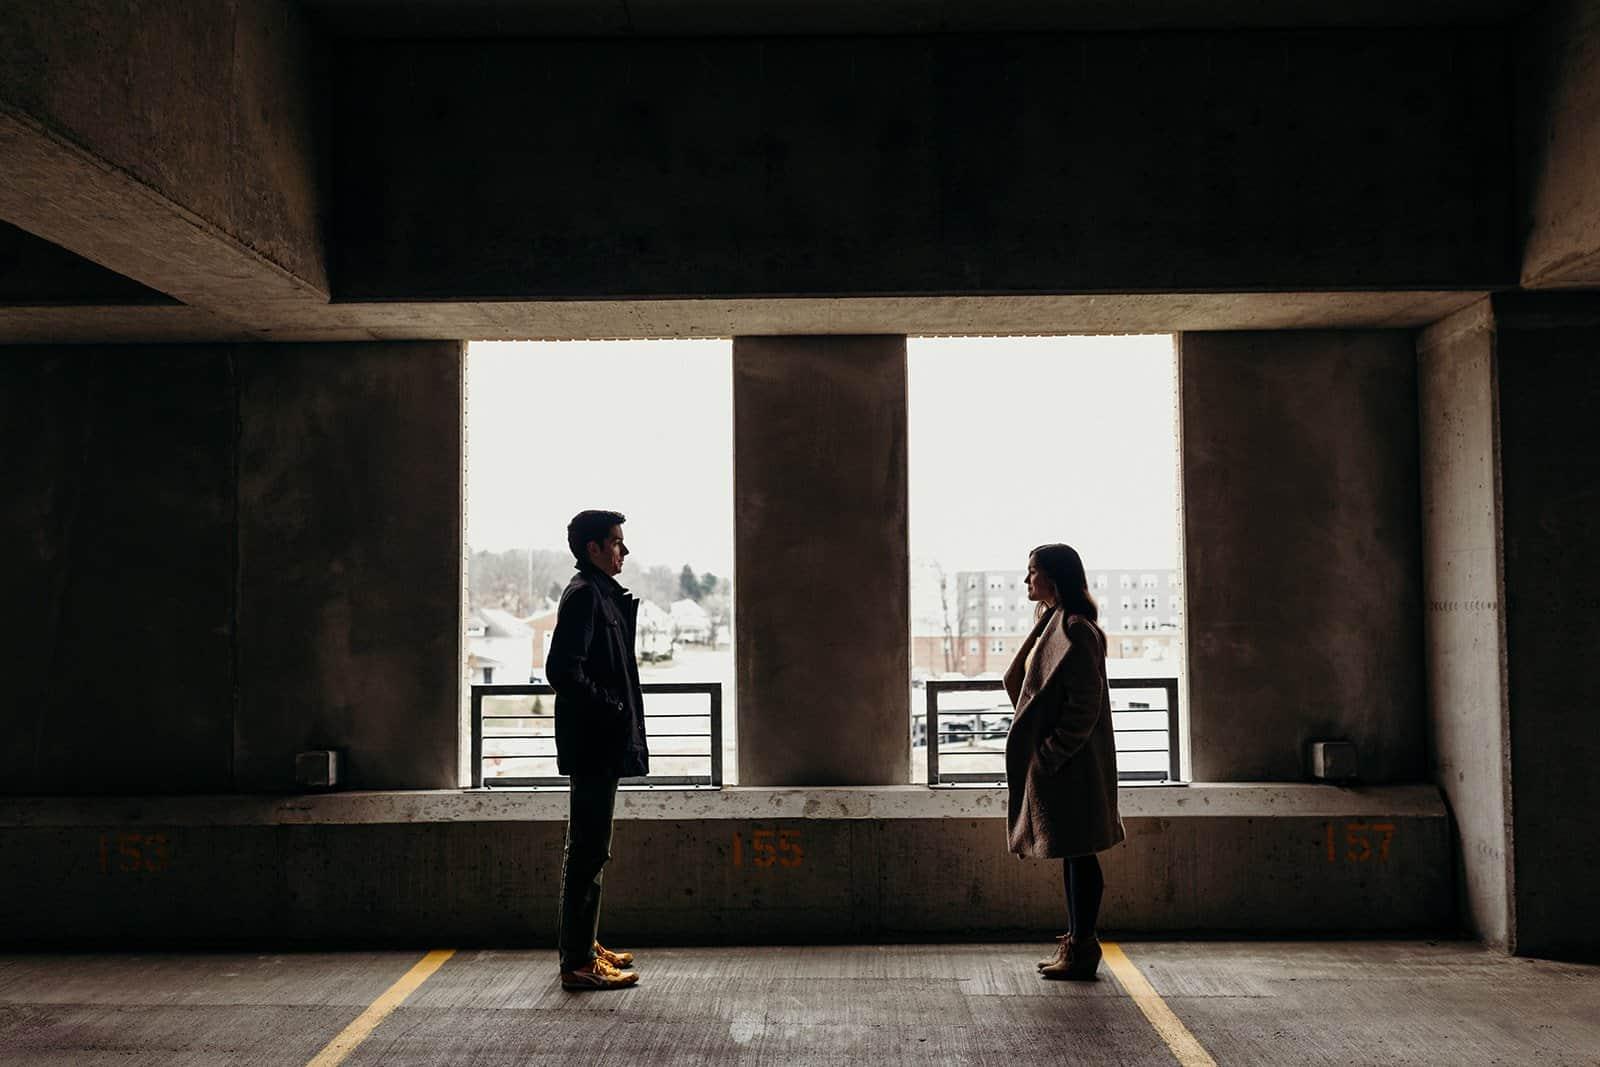 Kent Ohio Engaged couple facing each other in parking garage windows